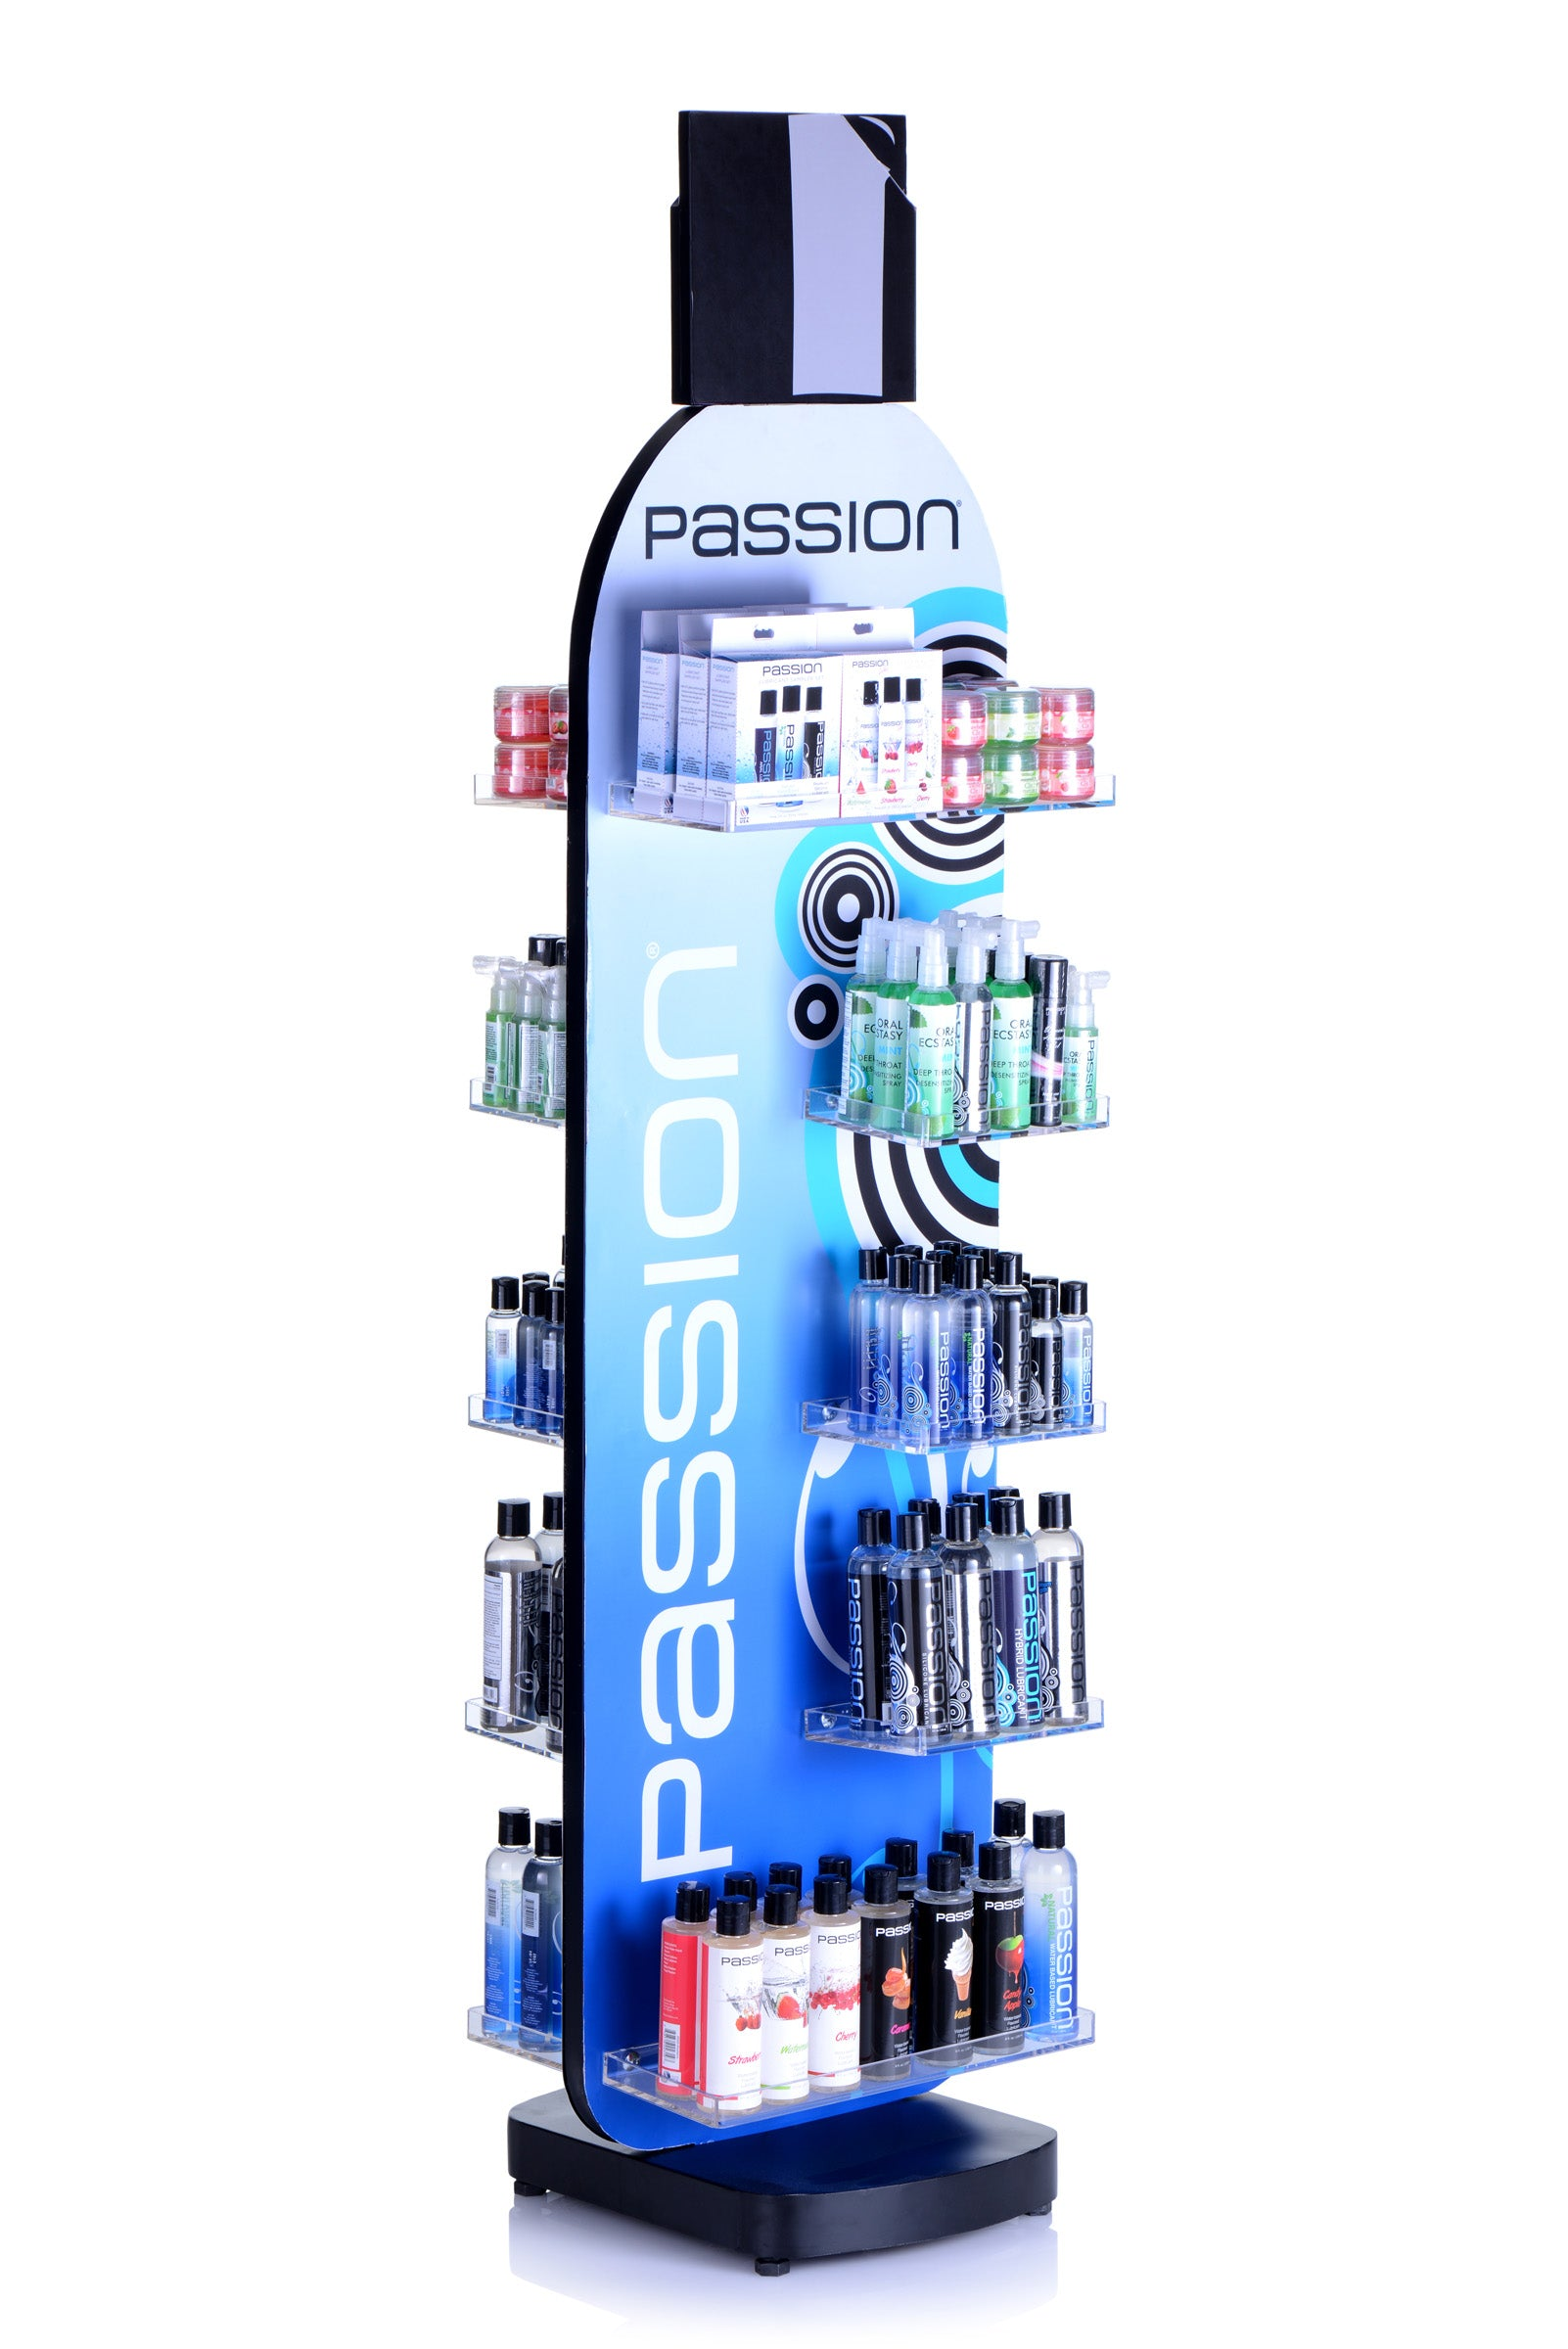 Passion Lubes POP Display